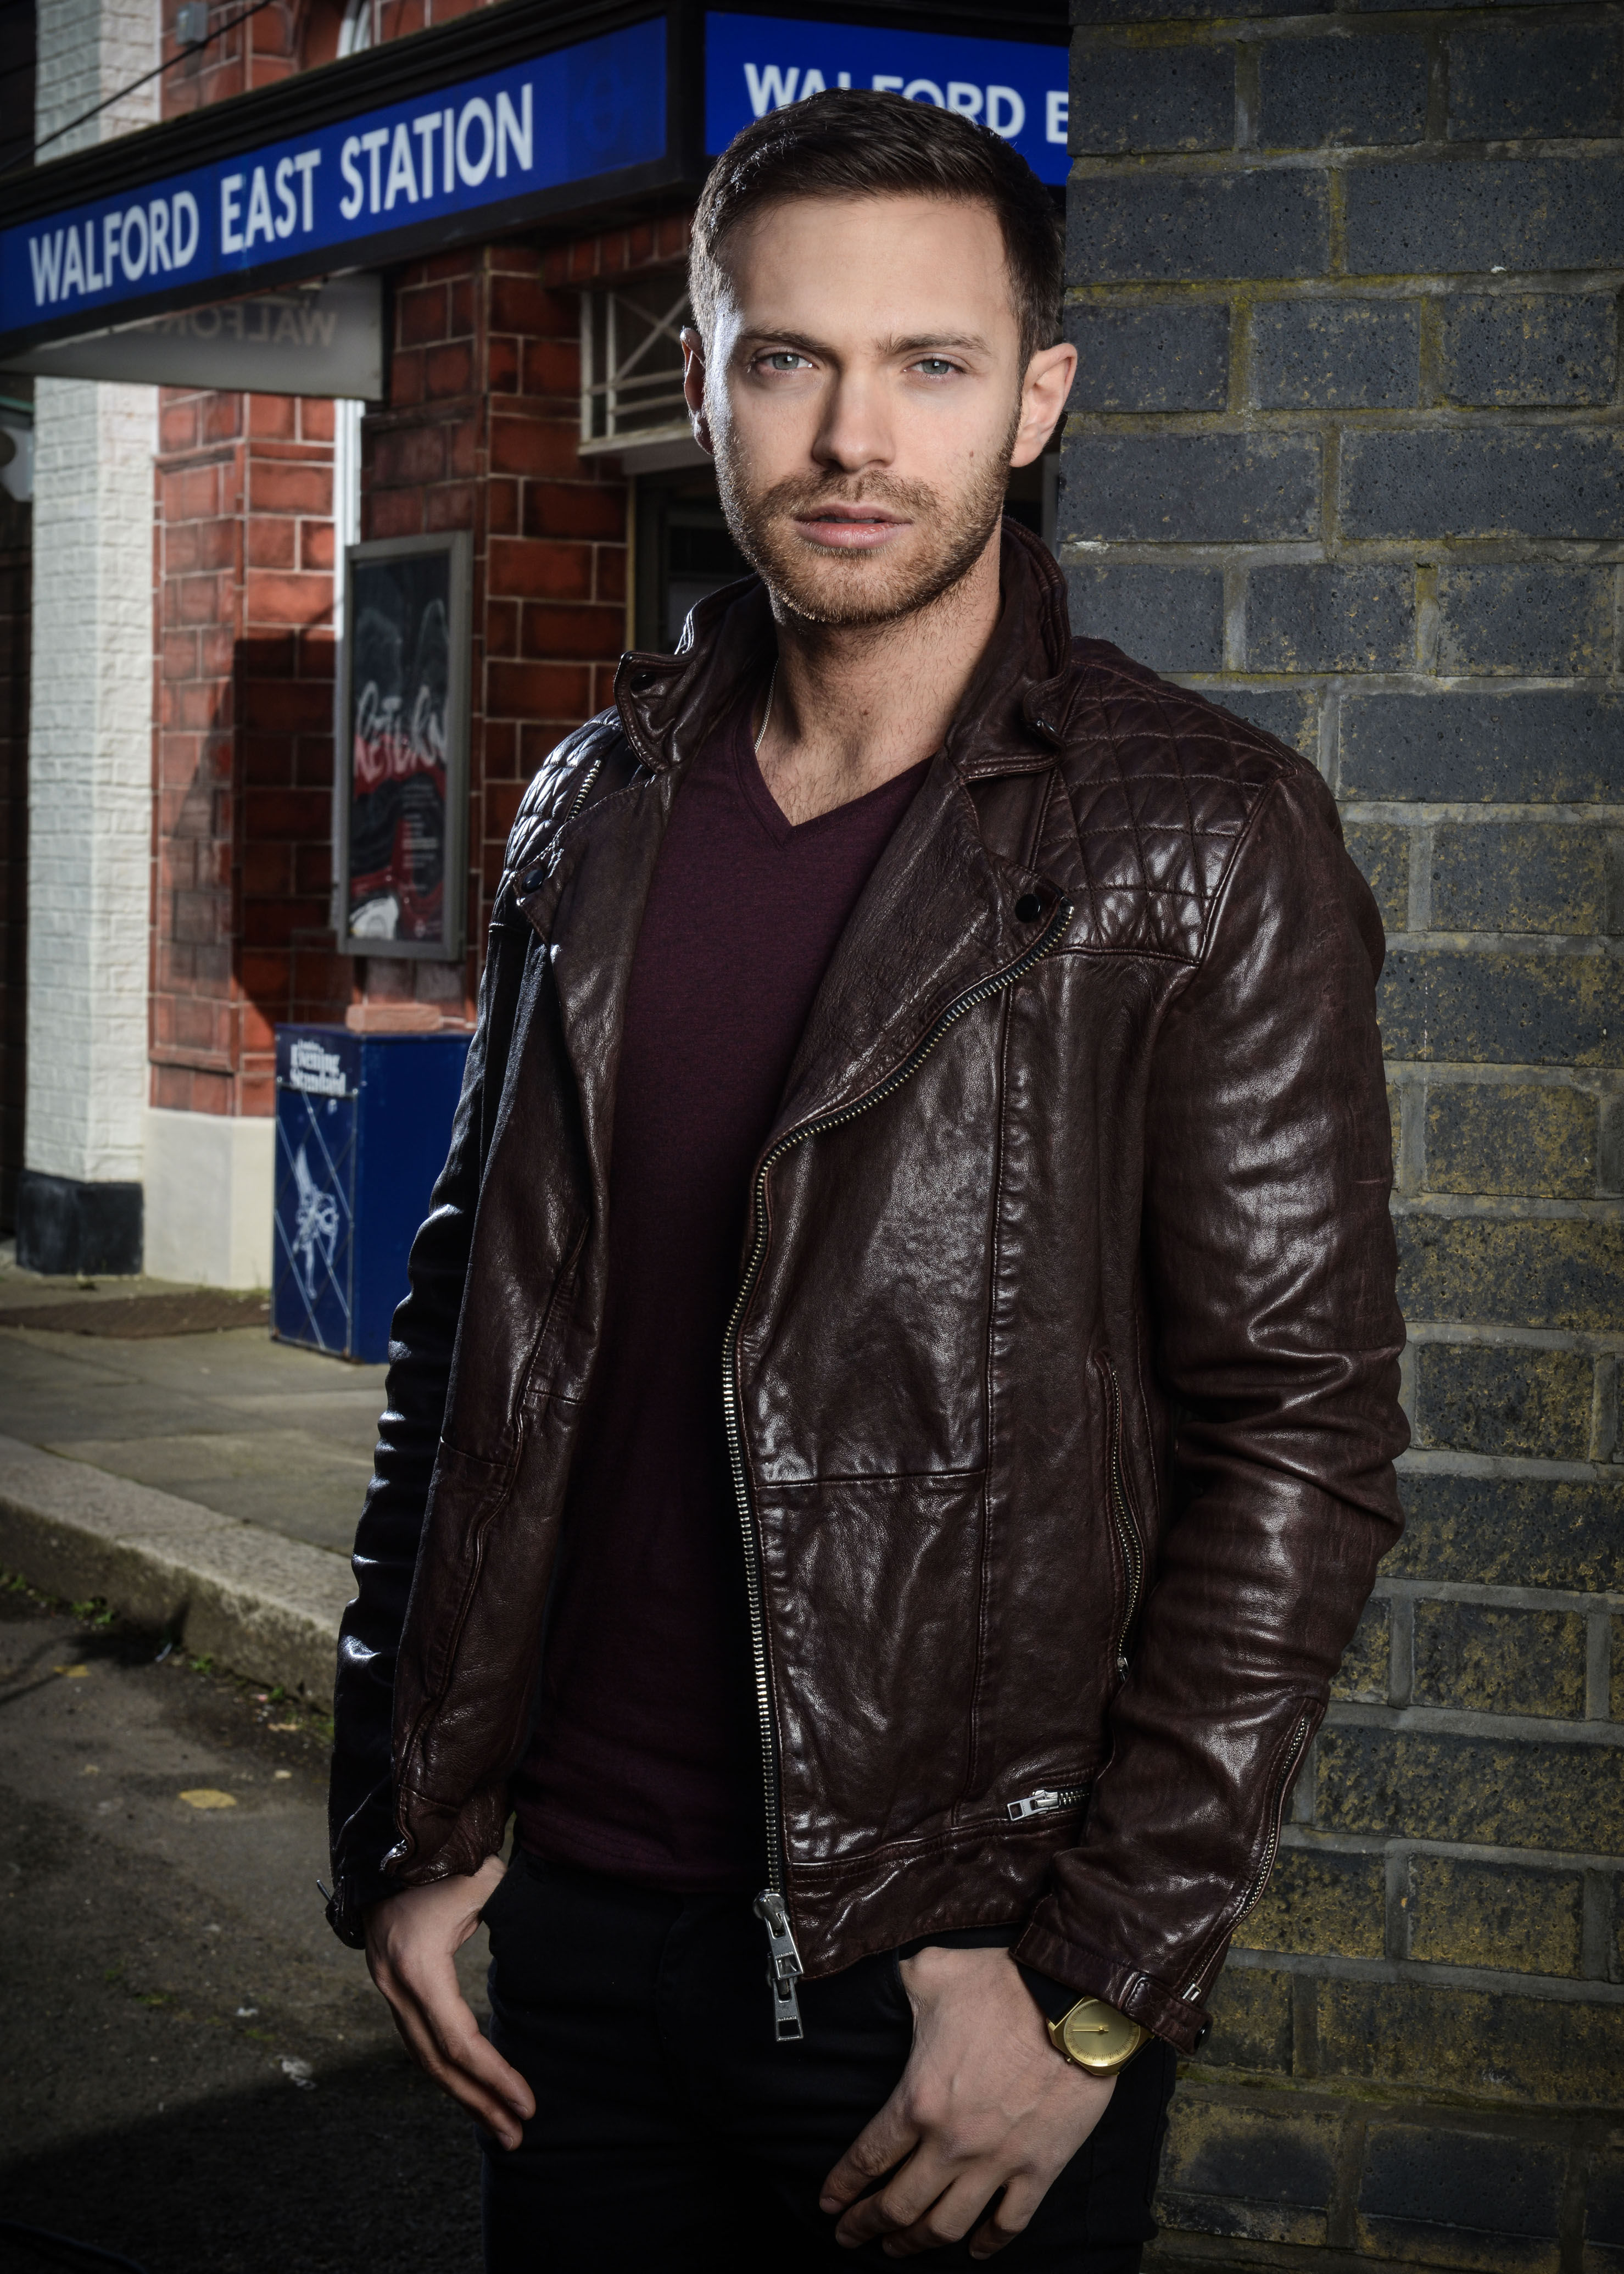 EastEnders spoilers: Will Dean Wicks get his comeuppance in a future storyline?